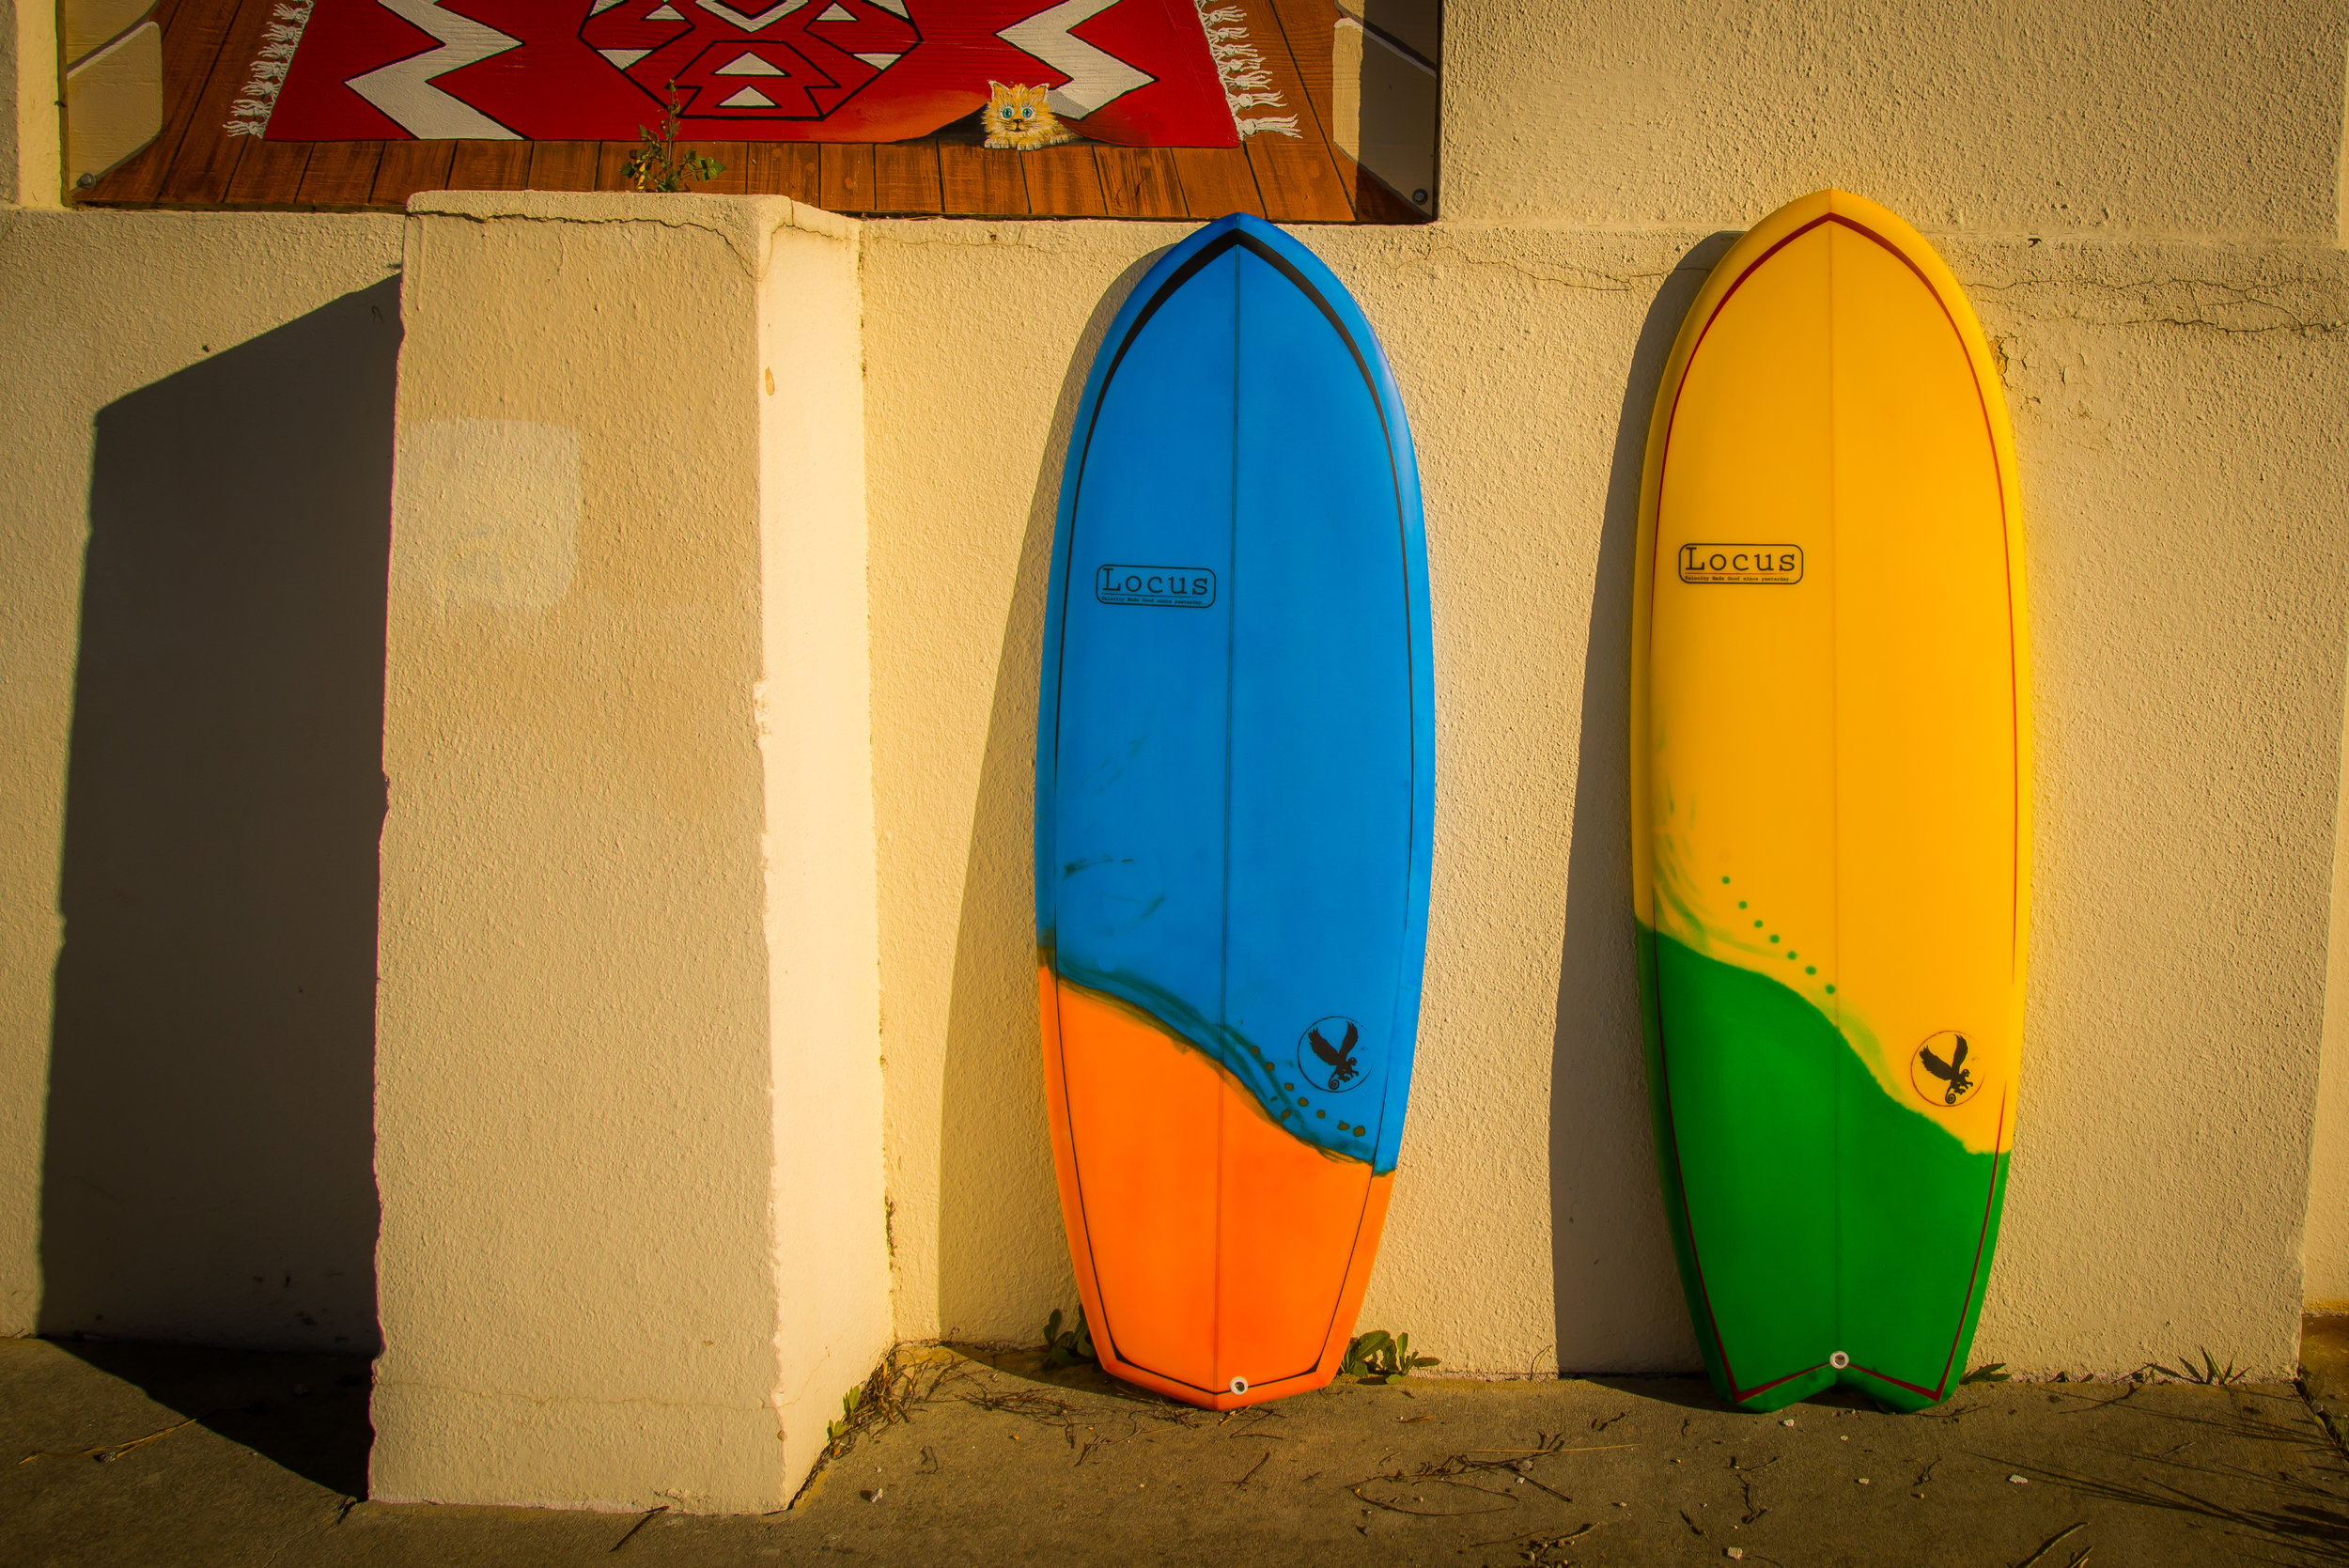 Gibbon, surf, surfboard, ecoboard, hand shaped, santa cruz, california, Locus, Locus Surfboards,quad, made in america